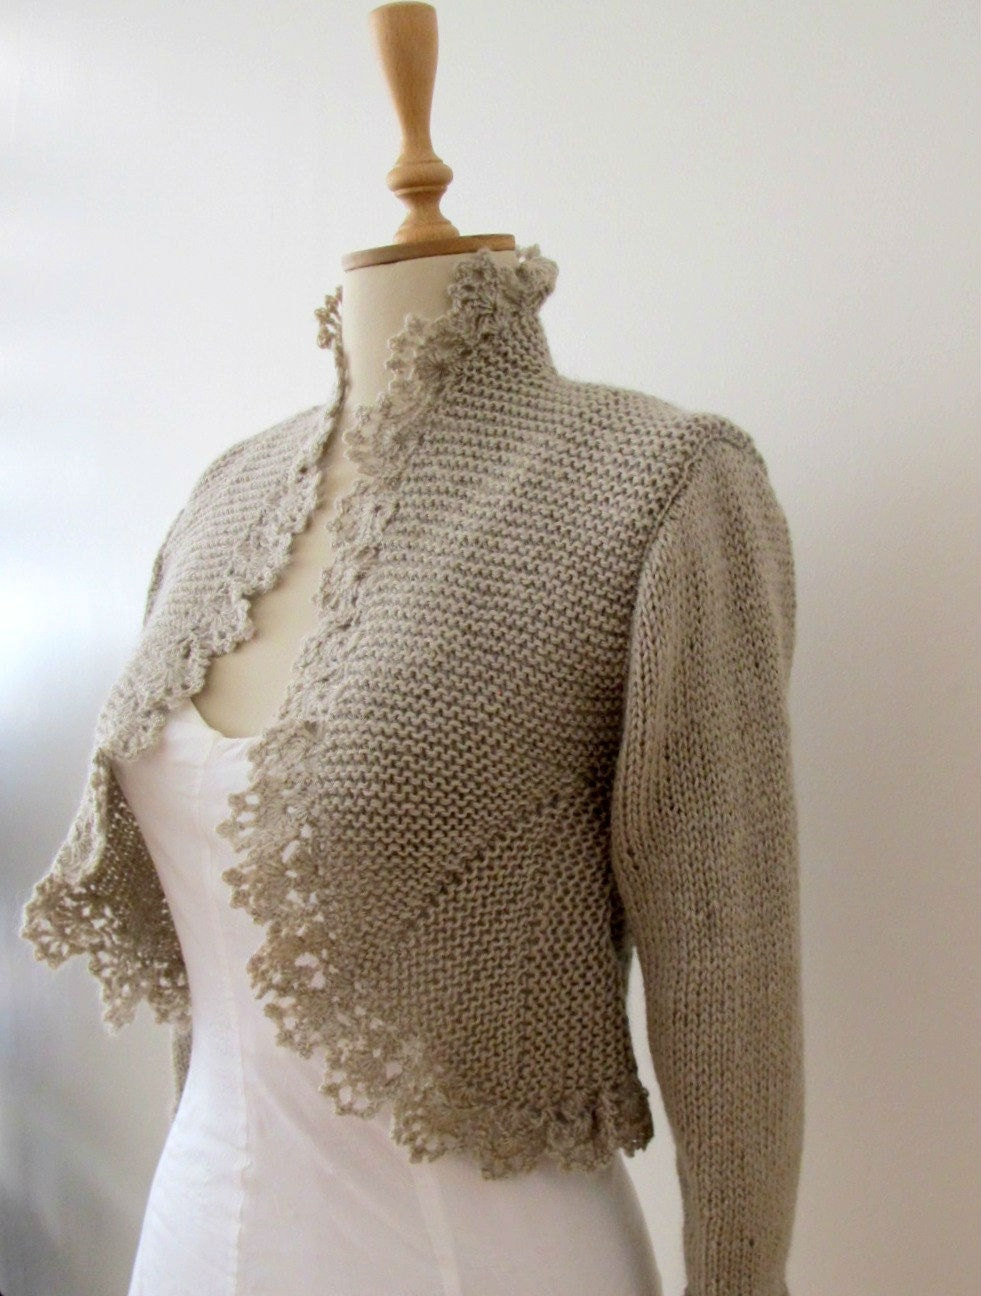 Knitting Patterns For Cardigans : Hand Knit Sweater Knitting Knitted Cardigan by crochetbutterfly